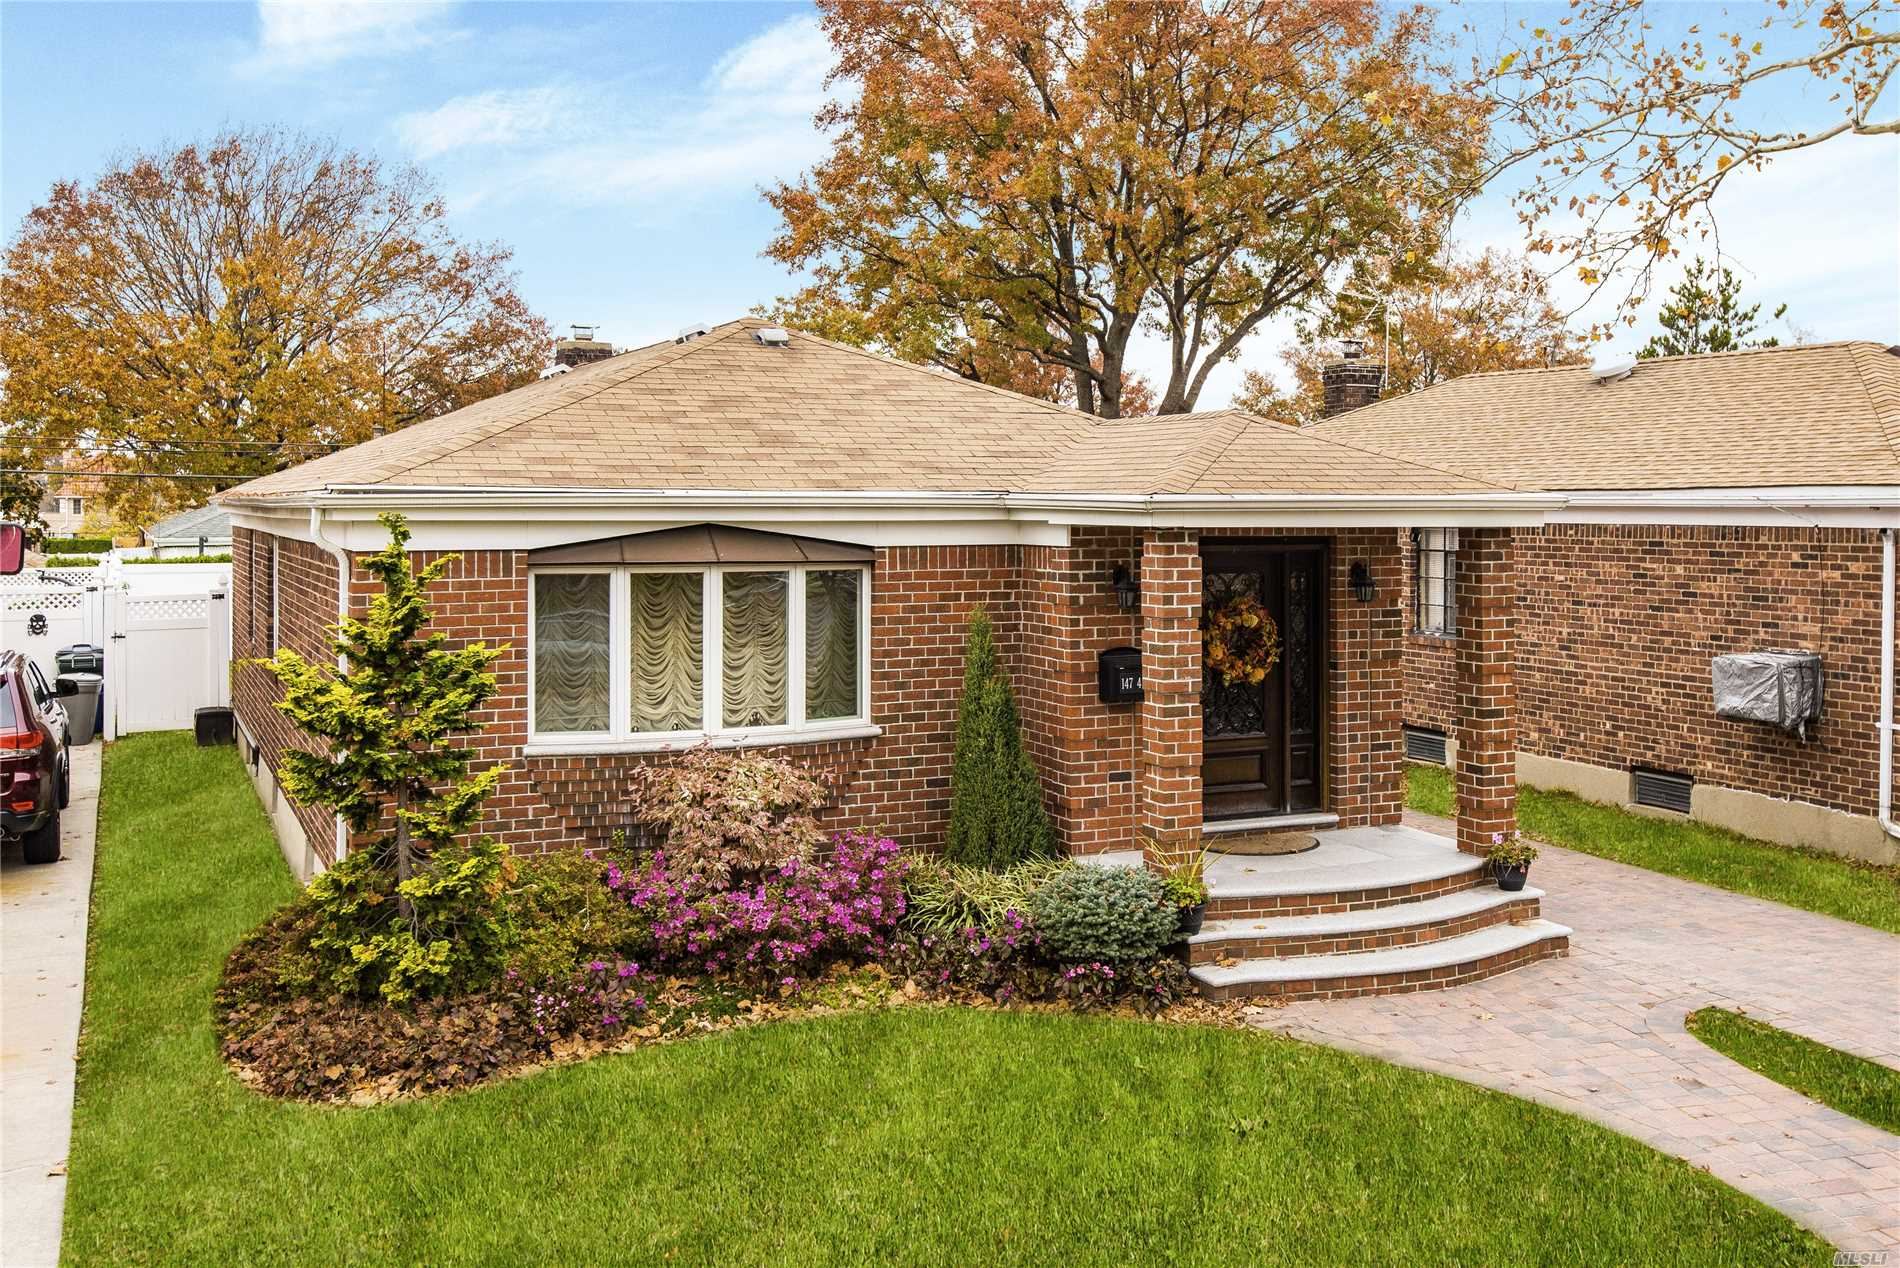 Stunning, One Of A Kind Fully Renovated Brick Ranch Situated In The Heart Of Whitestone. Open Concept Eat In Kitchen W/ Granite Countertops & Top Of The Line Appliances. 3 Spacious Bedrooms & 2 Full Baths. Custom Crown Moldings W/Hardwood Floors Throughout. Fully Renovated Basement W/ Full Bath, Laundry Room & Playroom. (Room For 4th Bedroom) New Plumbing & New Electrical Throughout. Close To Express Bus, Lirr, 7-Train, Schools, Shops, Parks & All Major Highway! Move Right In!!! A Must See!!!